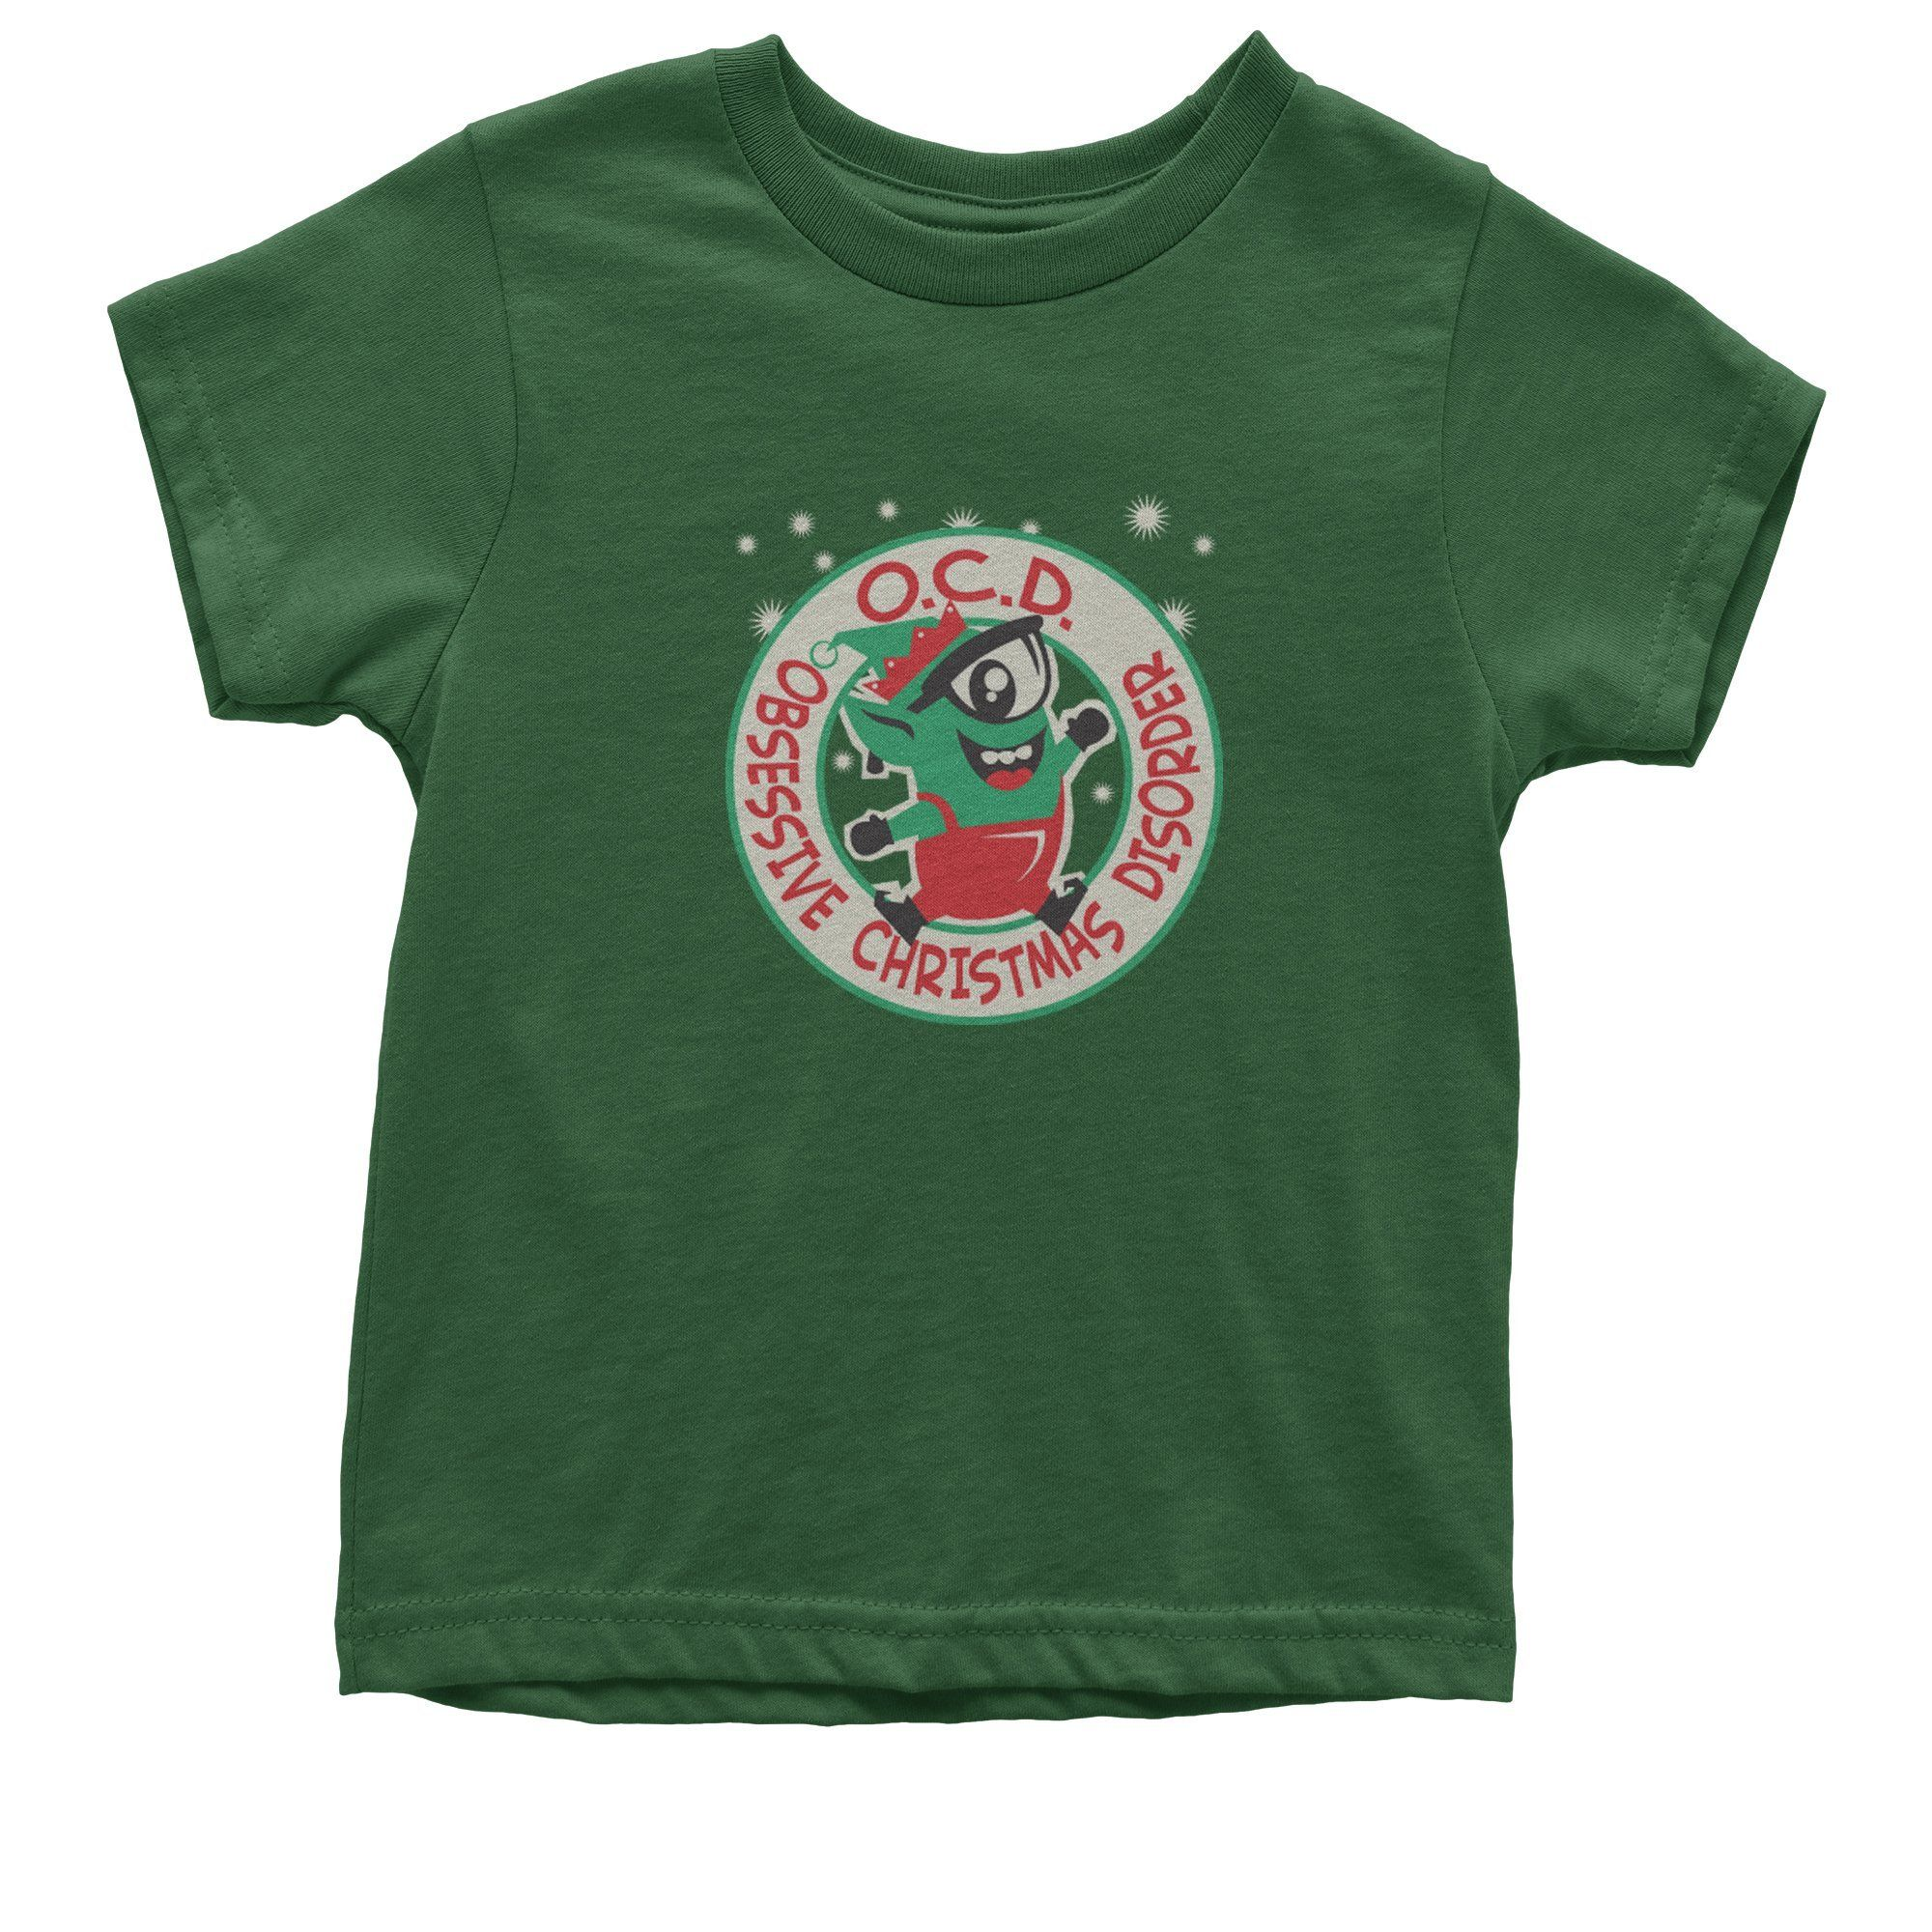 Obsessive Christmas DisorderYouth T-shirt